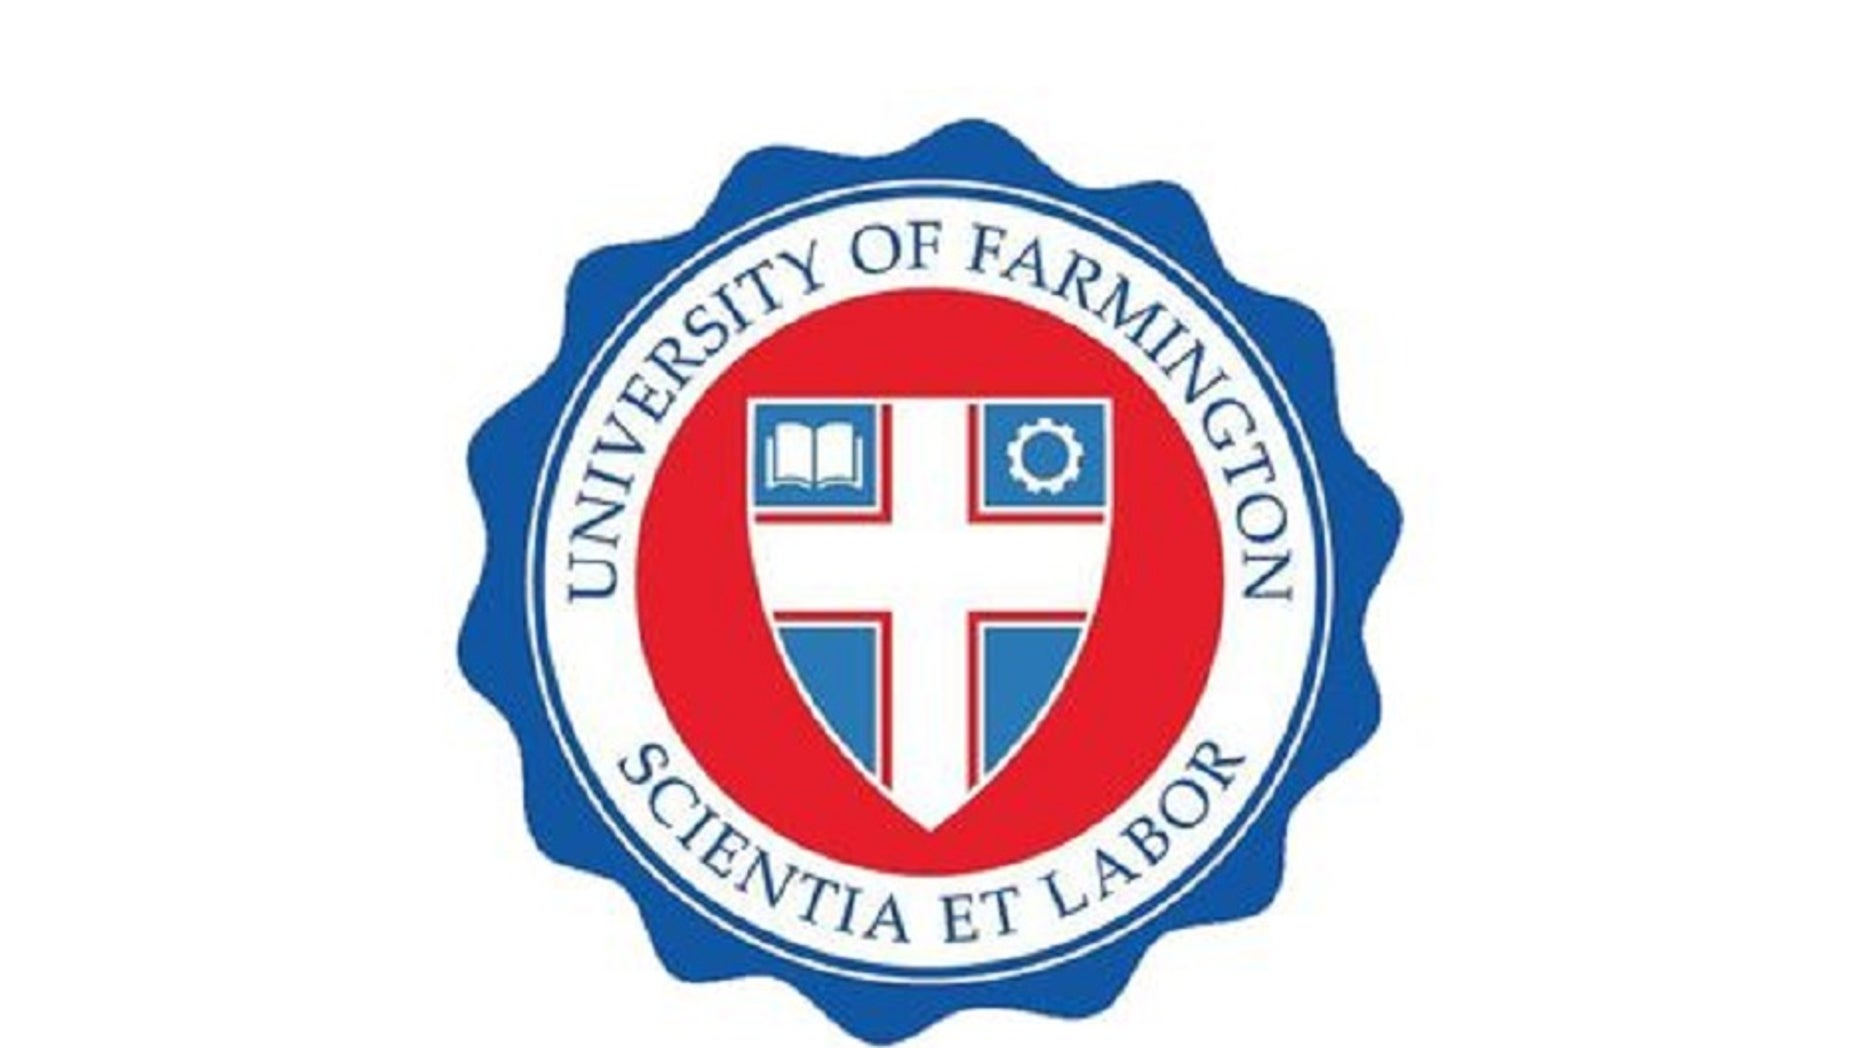 Logo of the University of Farmington in Farmington Hills, Michigan.